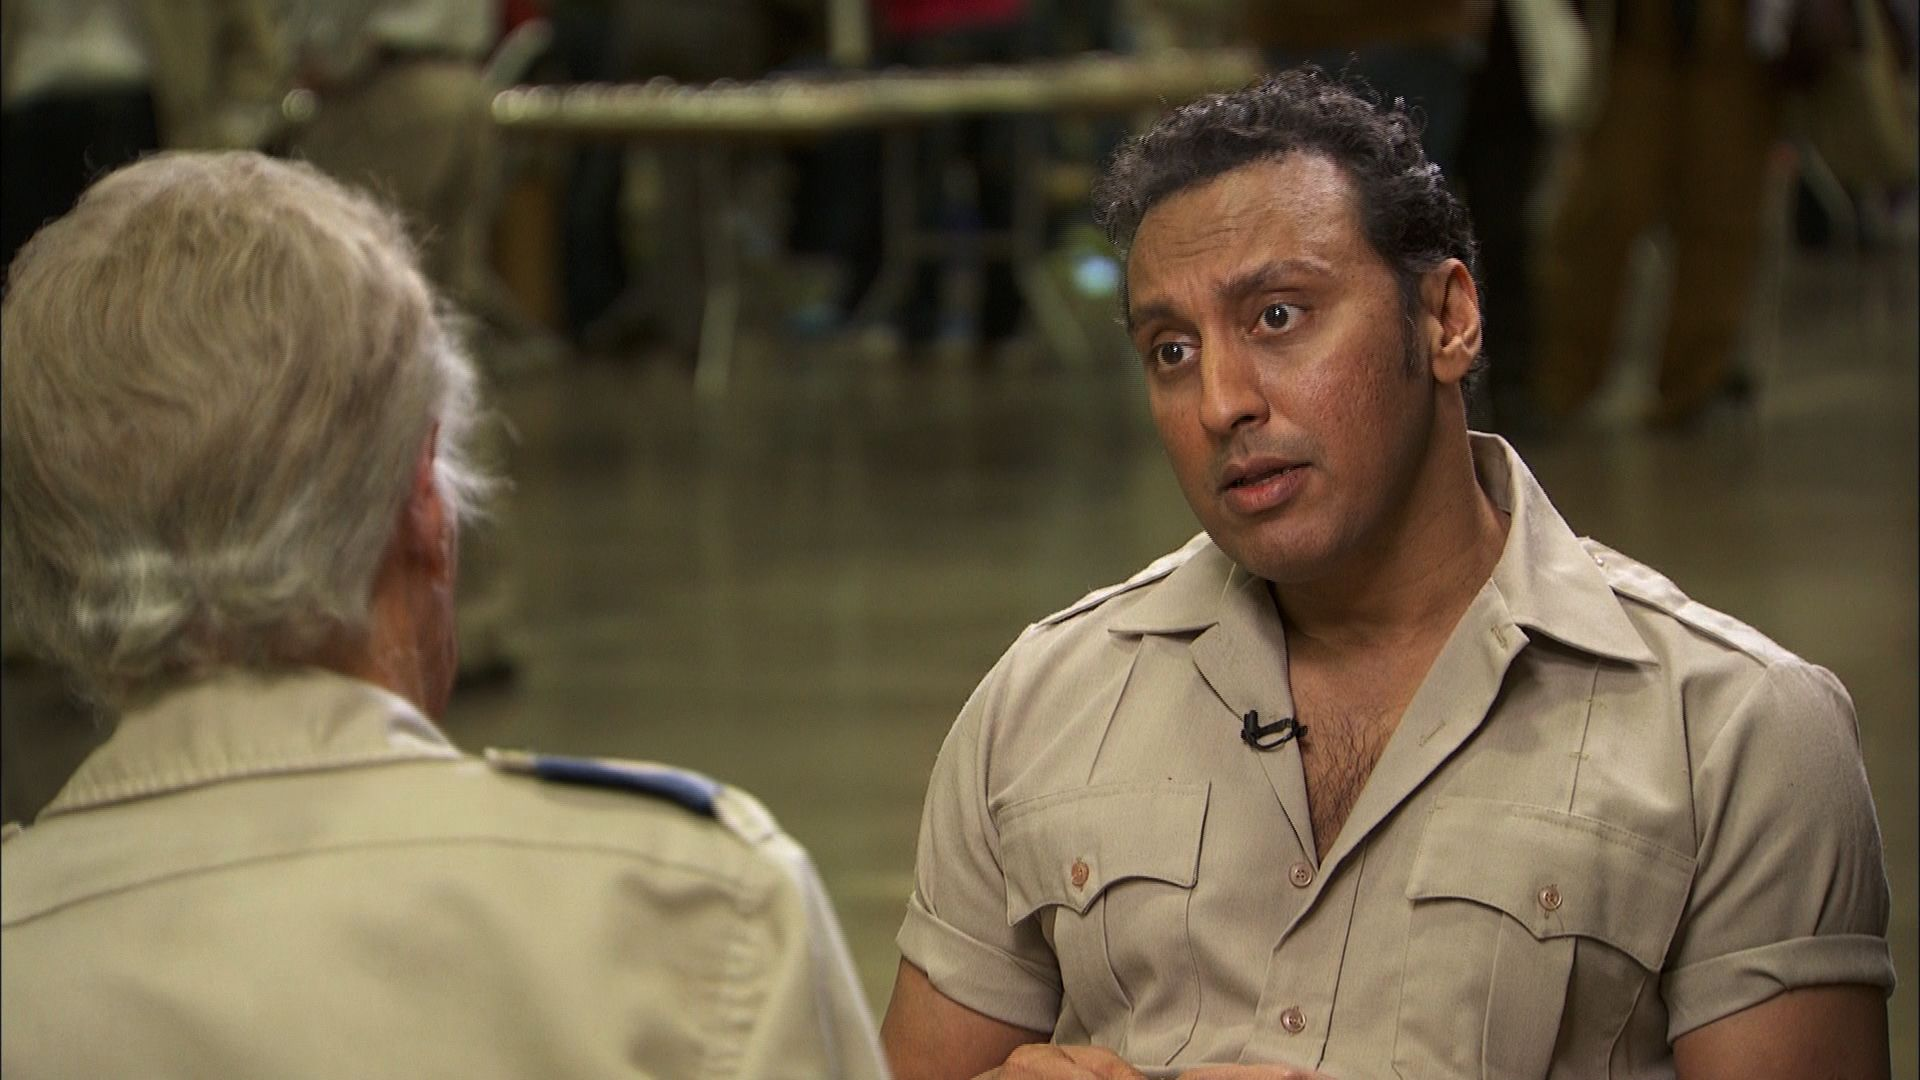 aasif mandvi twitteraasif mandvi daily show, aasif mandvi twitter, aasif mandvi wiki, aasif mandvi instagram, aasif mandvi national geographic, аасиф мандви, aasif mandvi spider man 2, aasif mandvi person of interest, aasif mandvi sex and the city, aasif mandvi married, aasif mandvi net worth, aasif mandvi imdb, aasif mandvi movies and tv shows, aasif mandvi book, aasif mandvi don yelton, aasif mandvi girlfriend, aasif mandvi healthcare, aasif mandvi youtube, aasif mandvi hbo, aasif mandvi interview